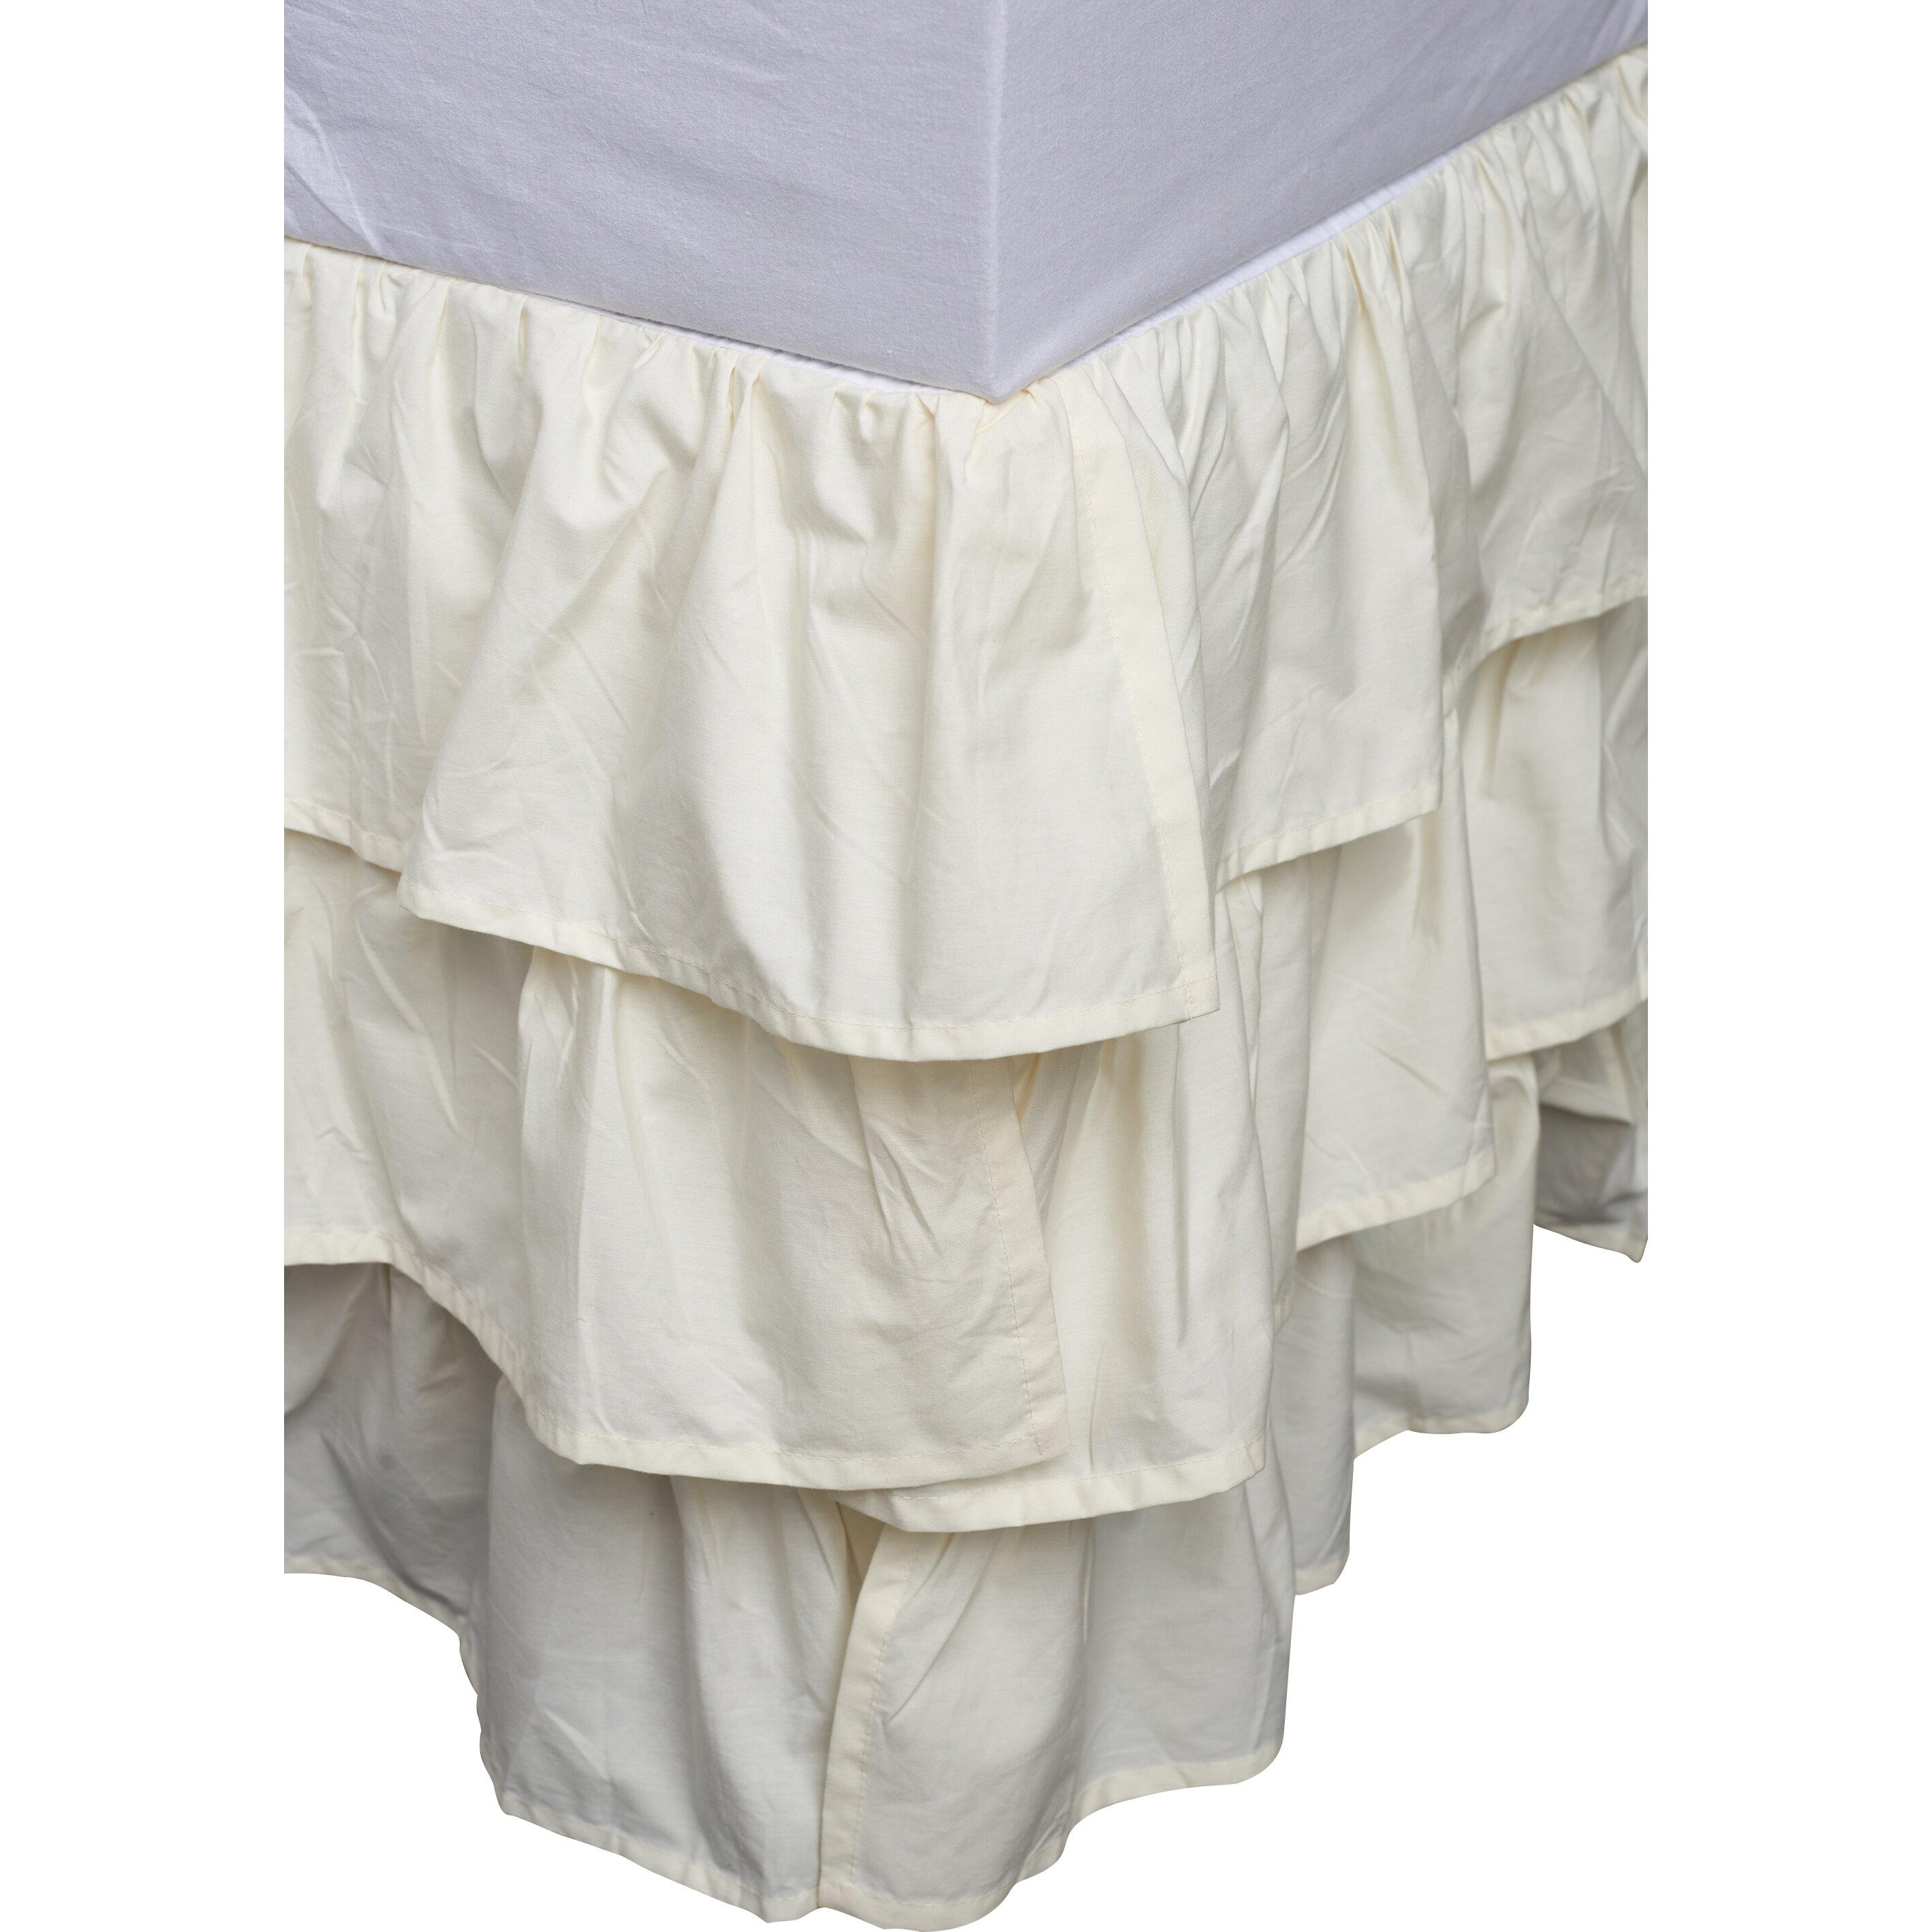 Cotton Bed Skirt 91